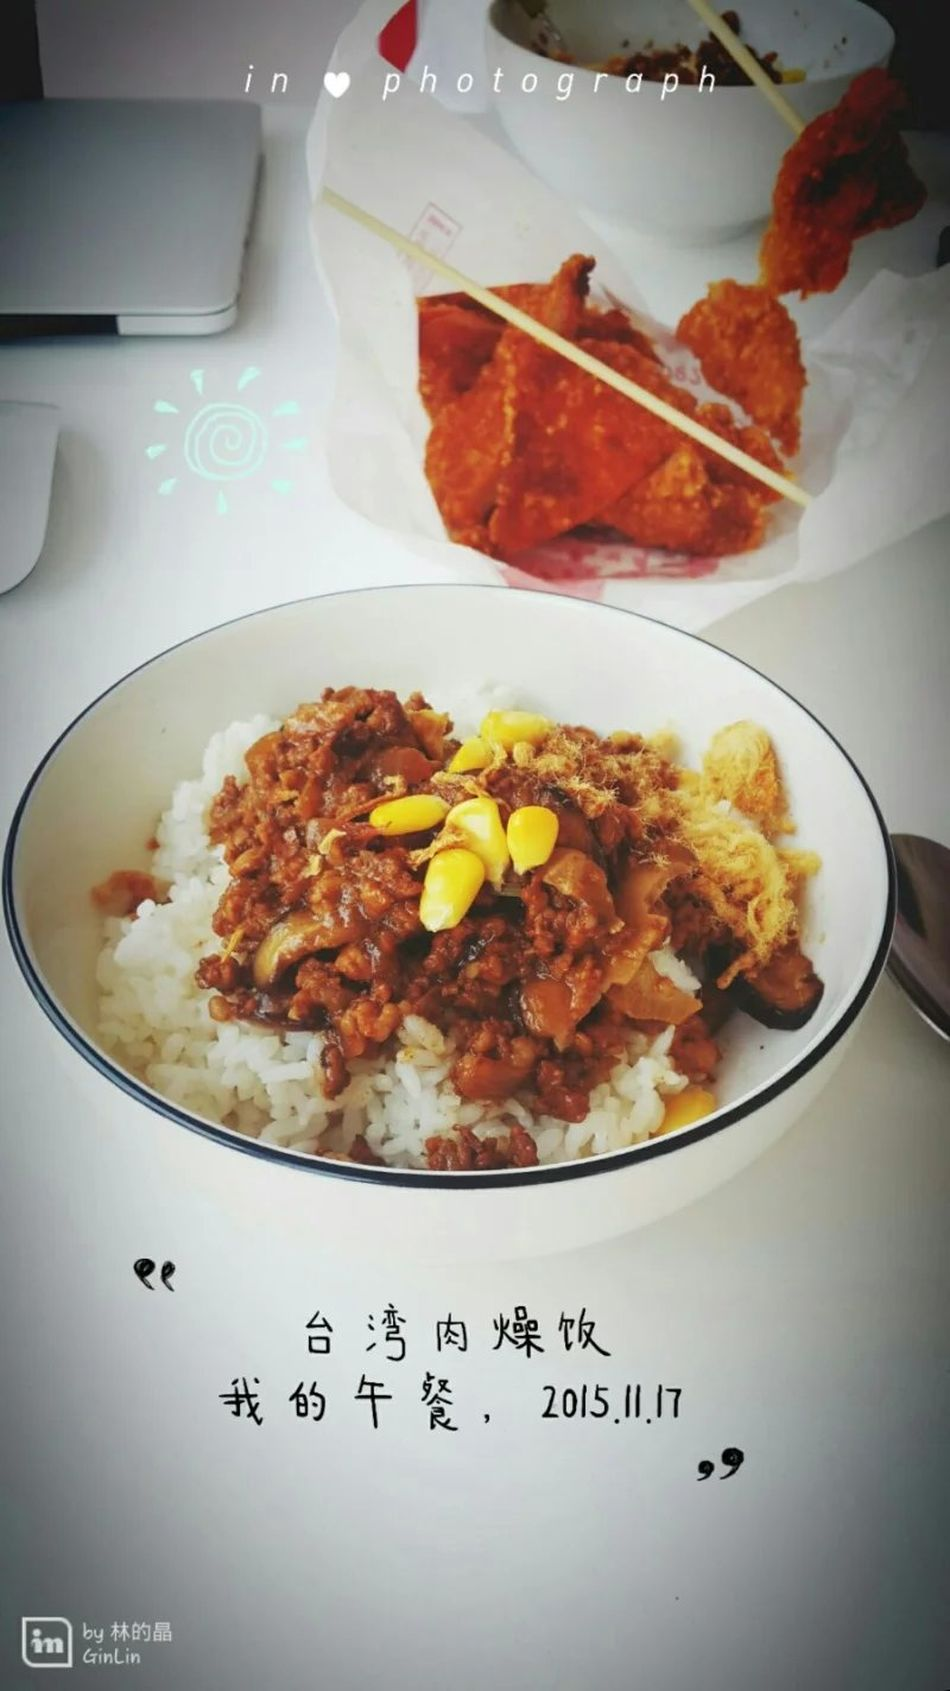 Lunch Rice With Pork